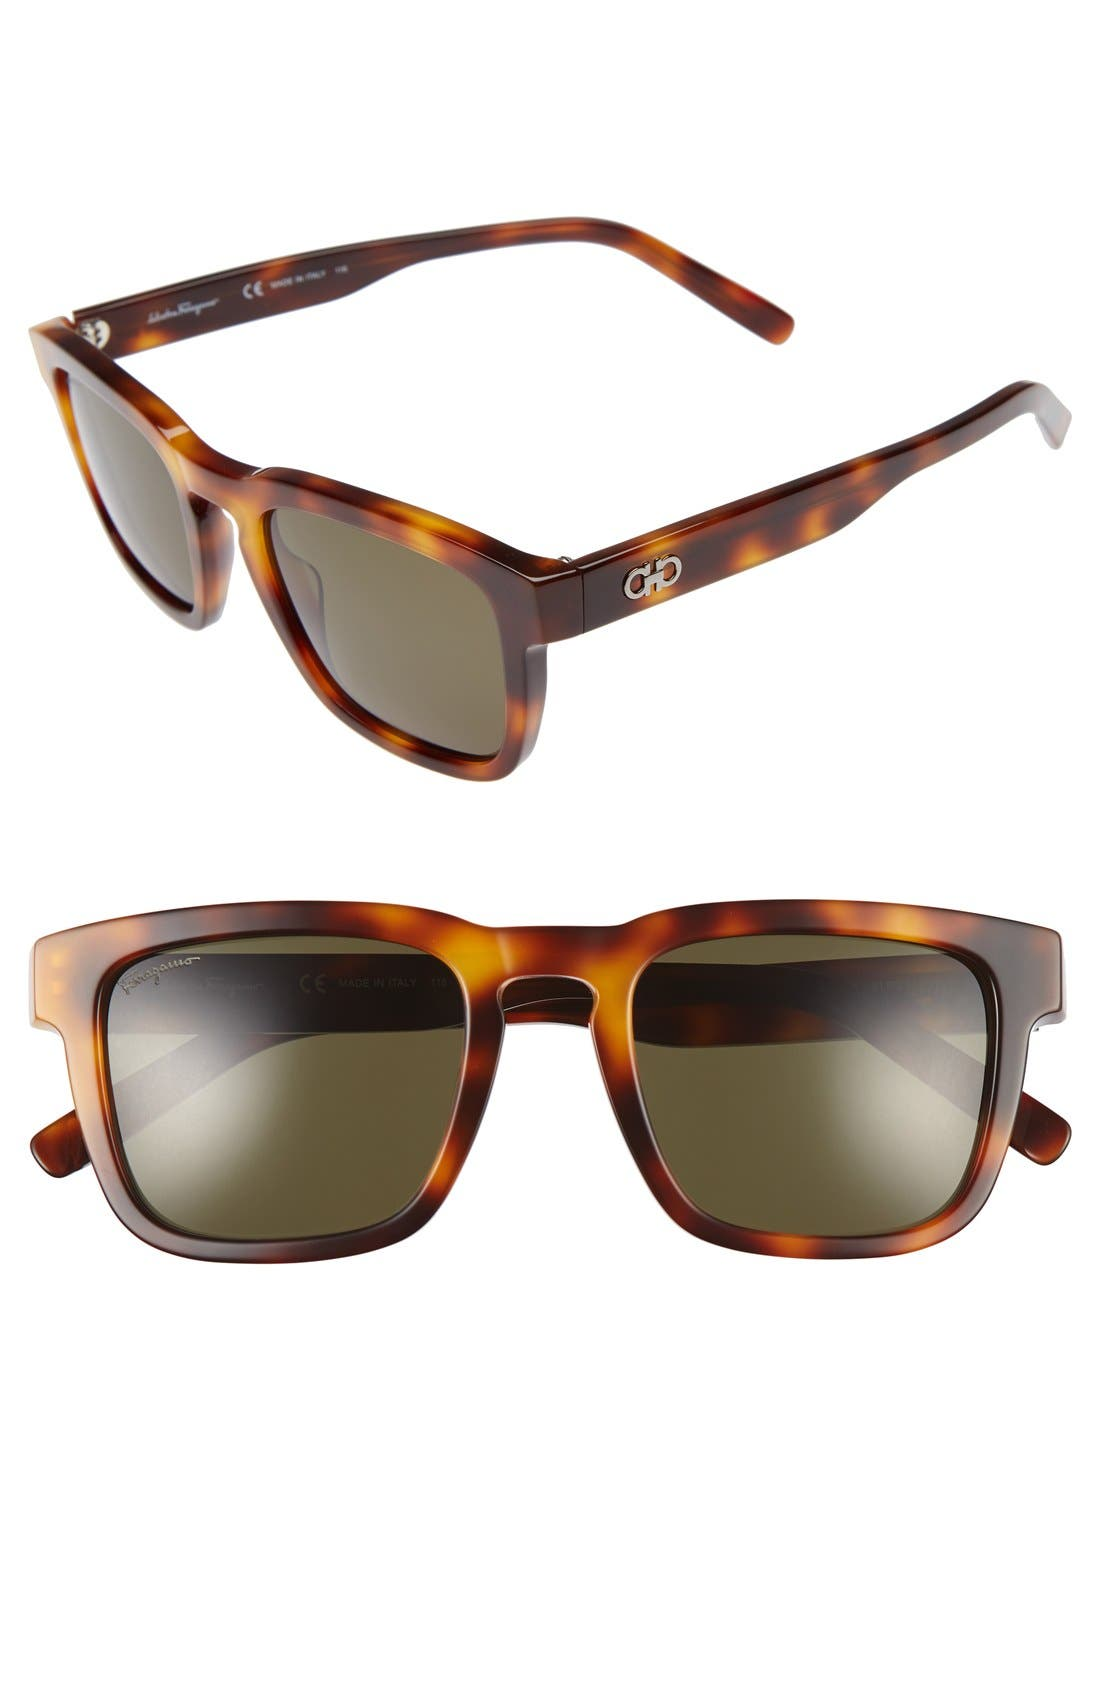 Main Image - Salvatore Ferragamo 51mm Square Sunglasses